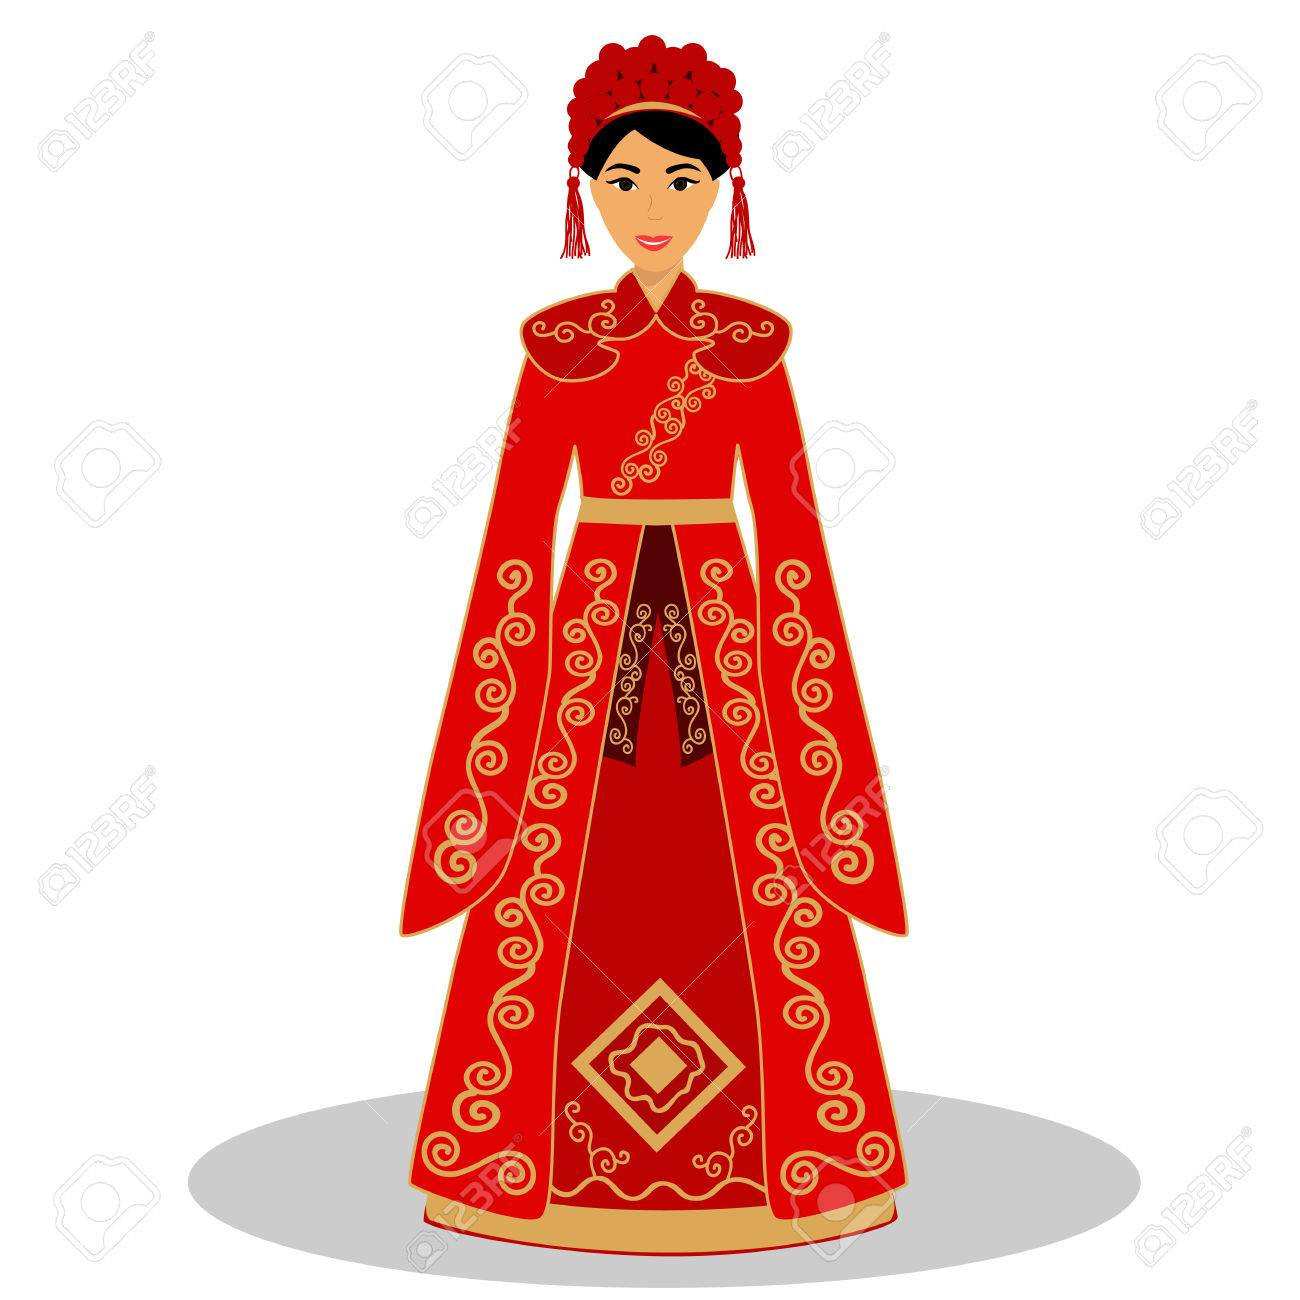 Chinese Wedding Dress.Traditional Chinese Bride Bride In Wedding Dress Vector Illustration